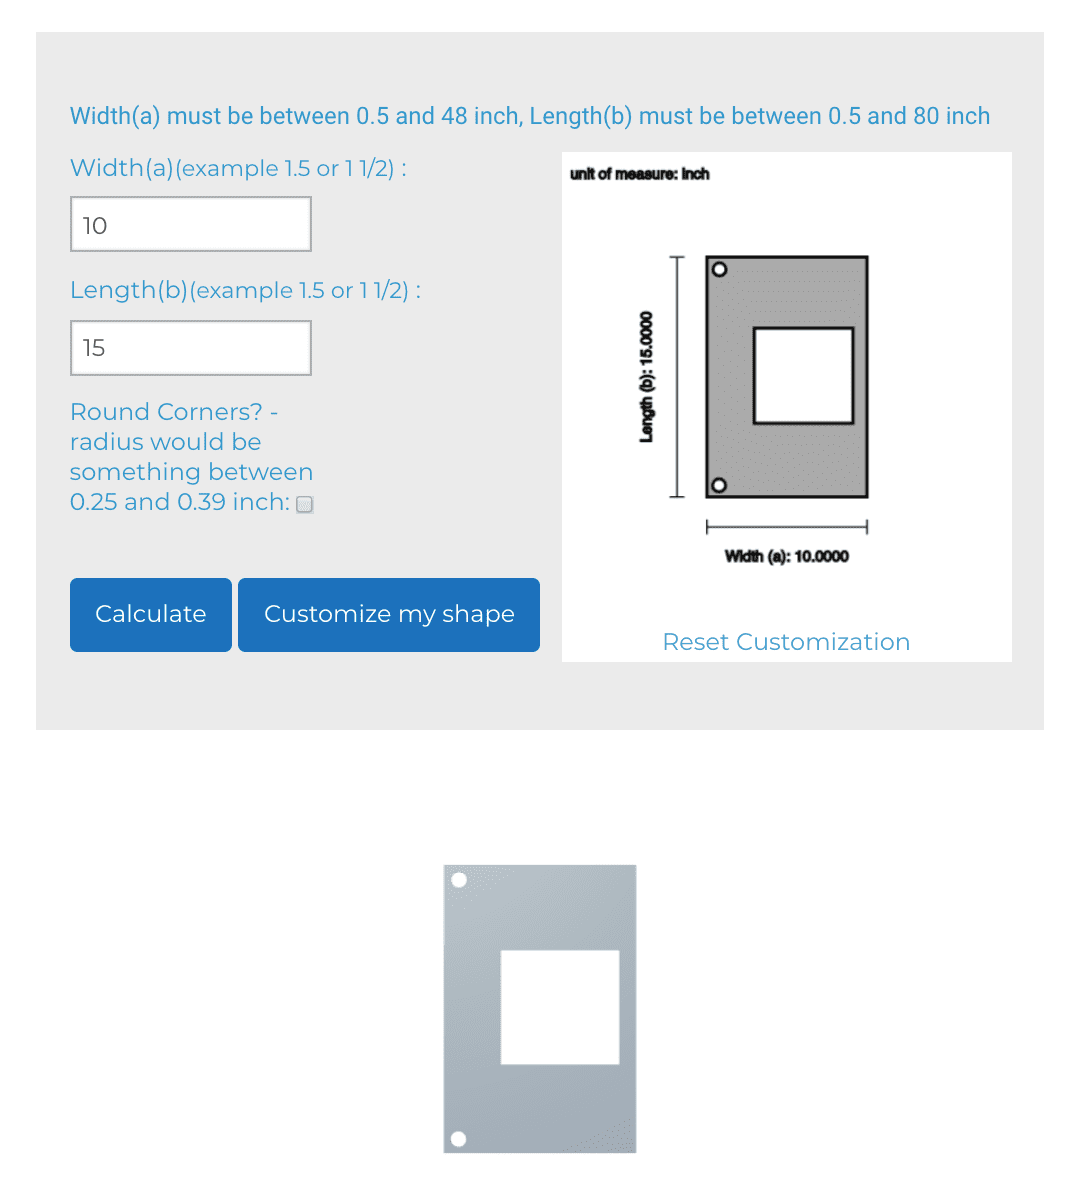 ANNOUNCING - New Features to Make Your Sheet Metal Part More Specific